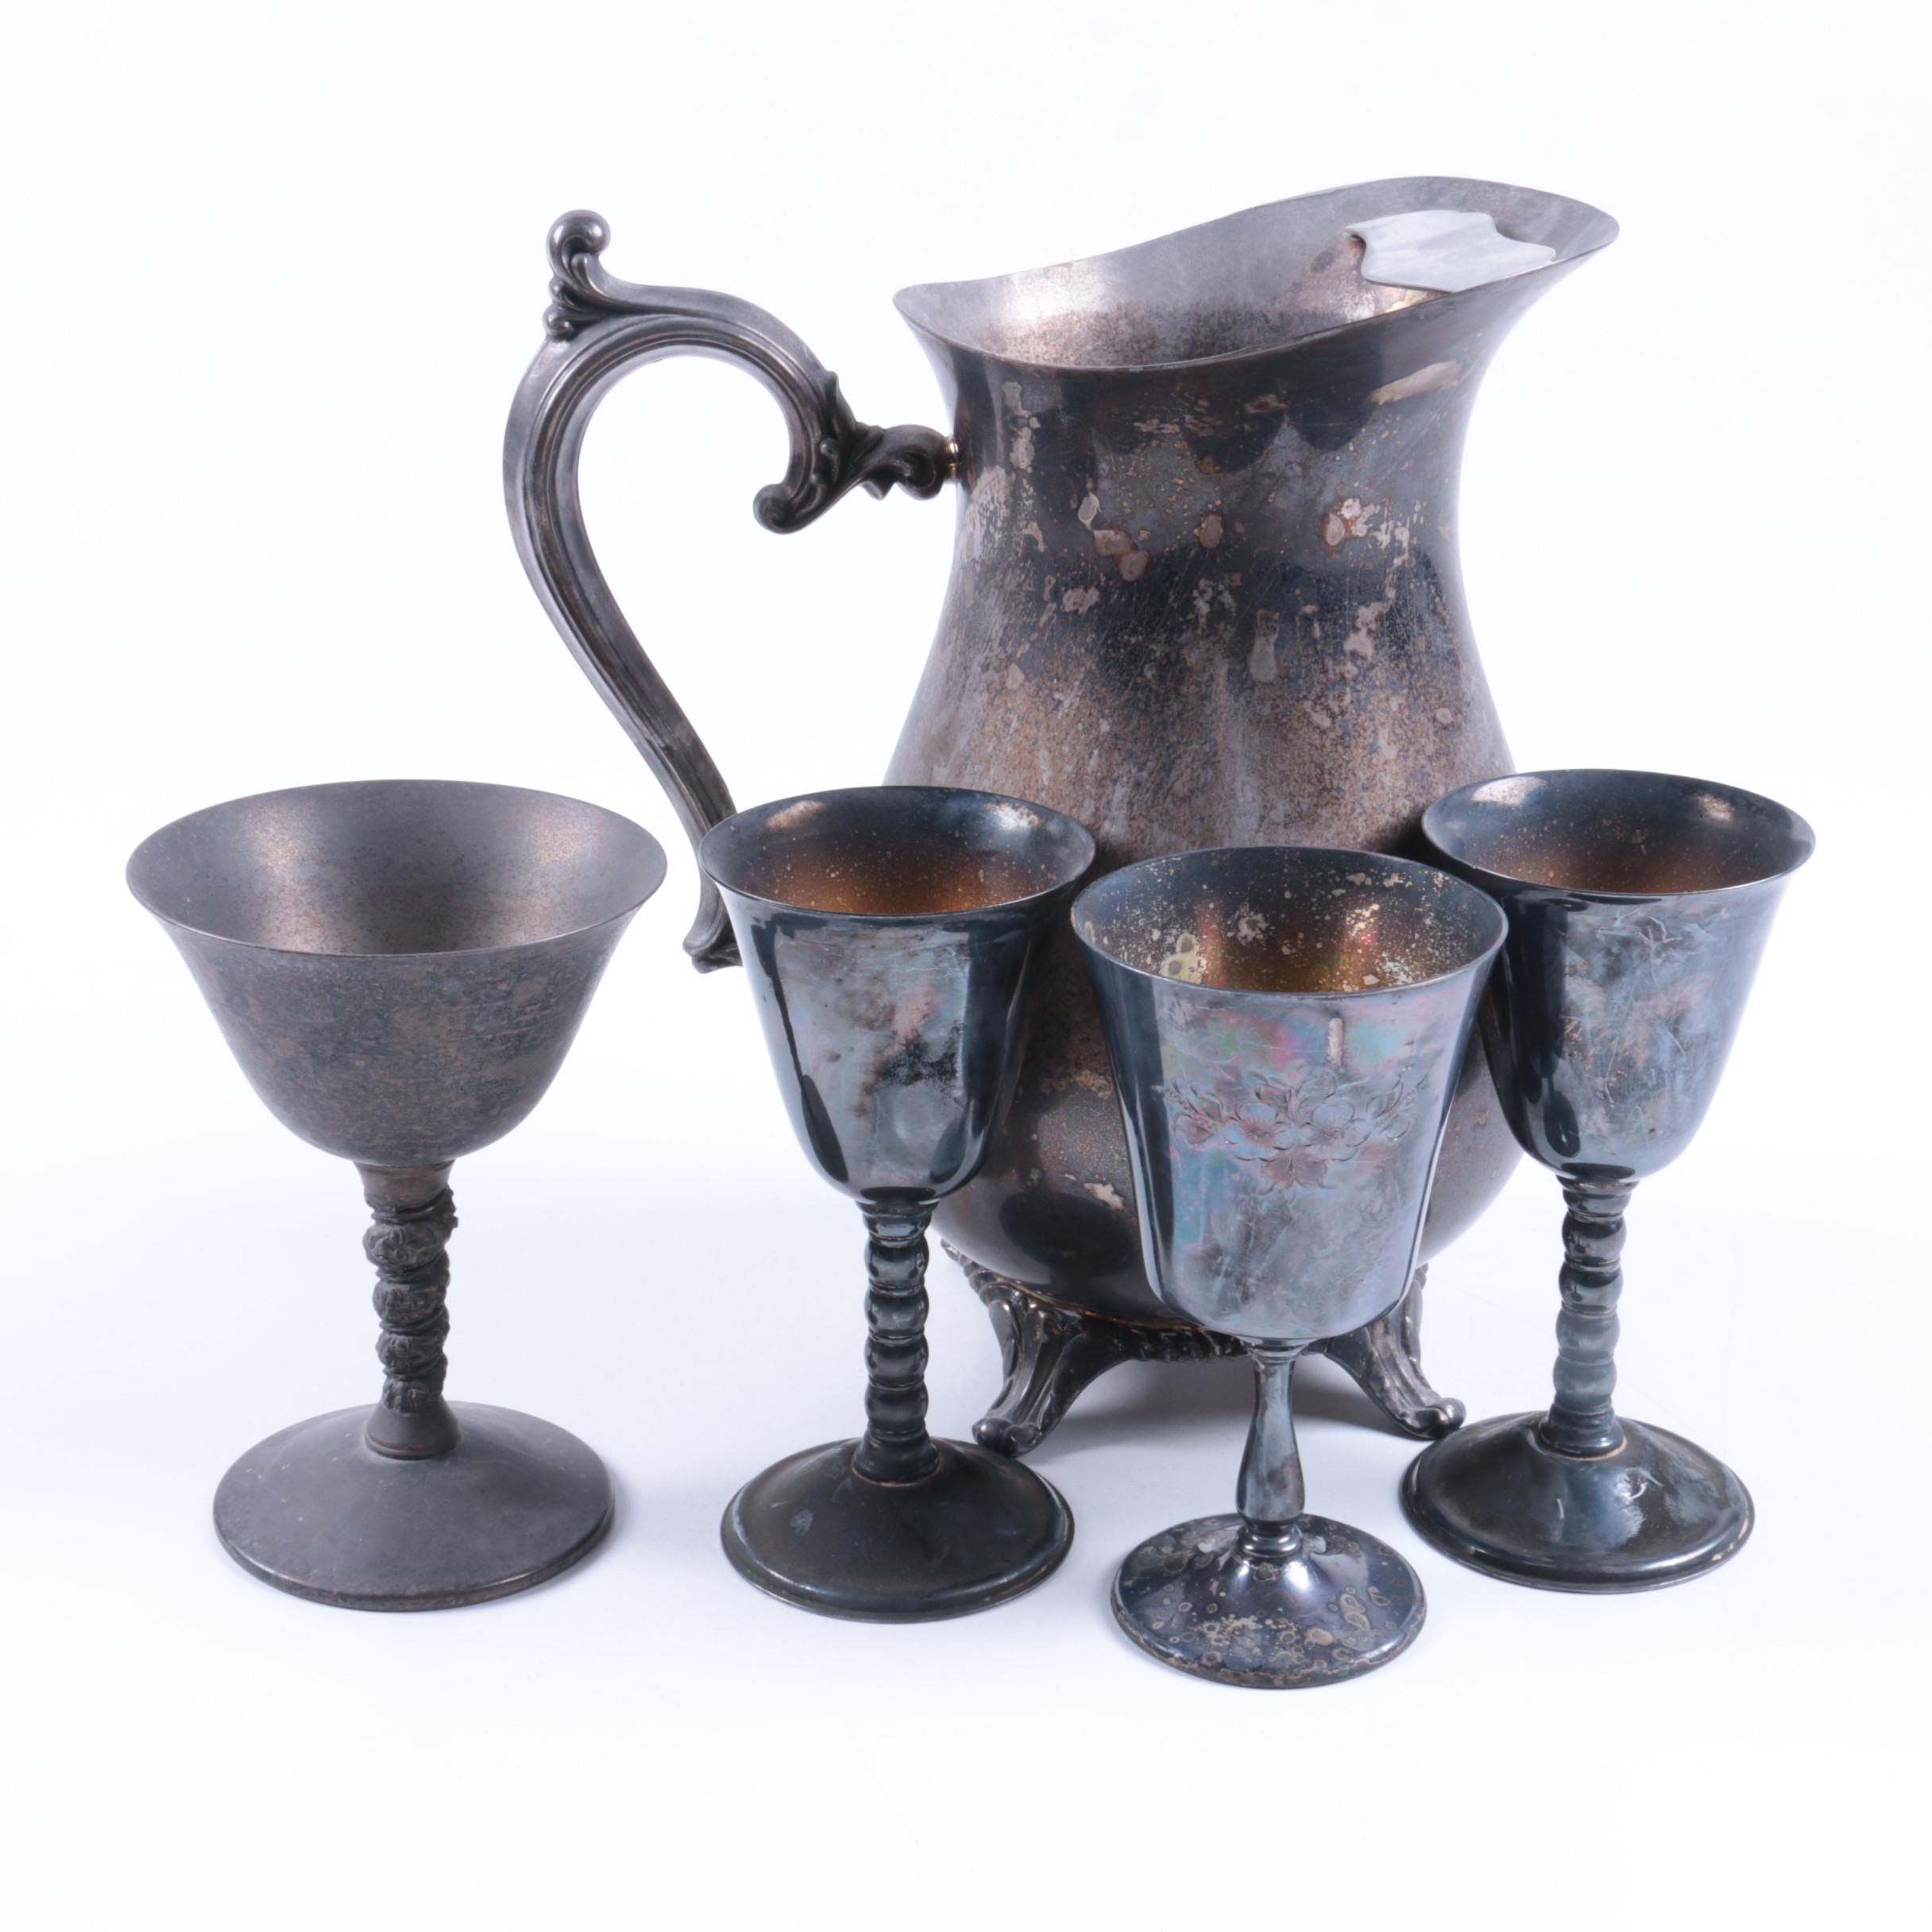 Wm Rogers Mfg. Co. Silver-Plated Pitcher with Hejl Denmark and Other Goblets